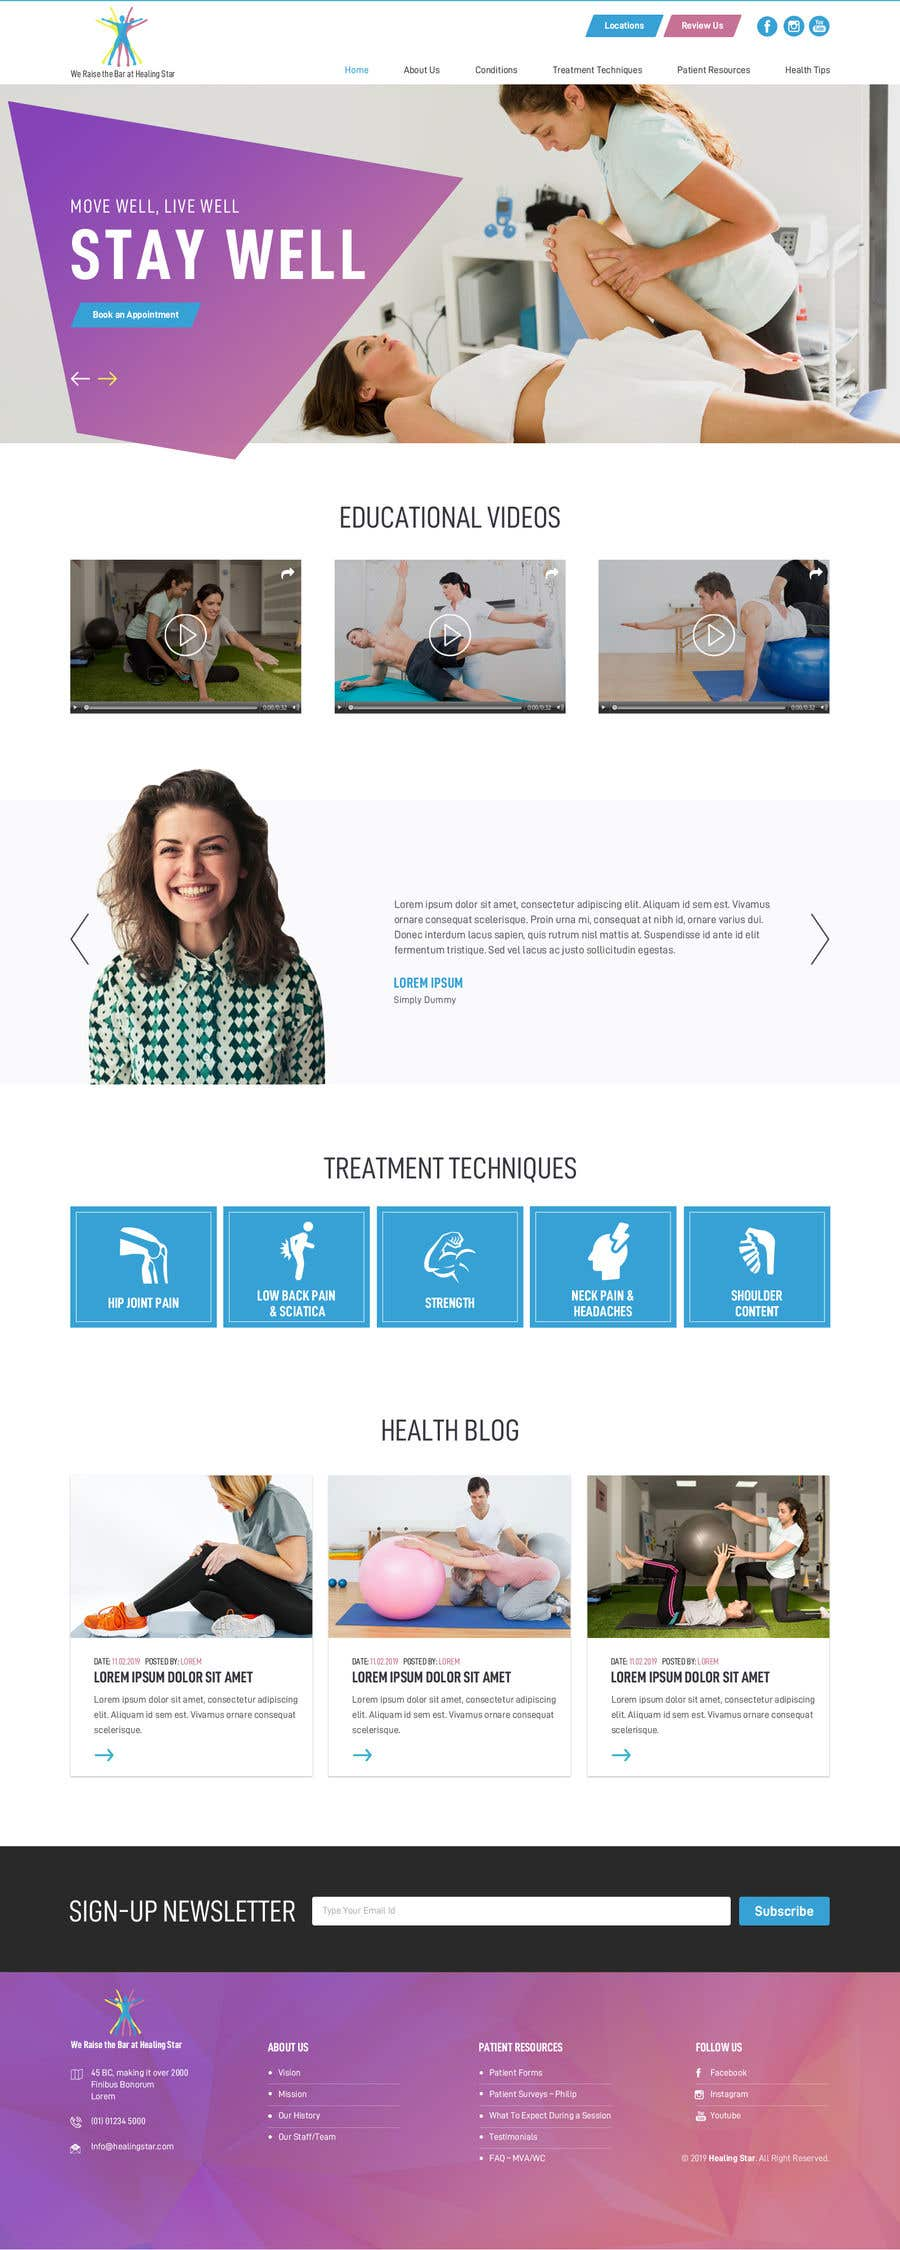 Penyertaan Peraduan #13 untuk Need PSD for physical therapy website home page